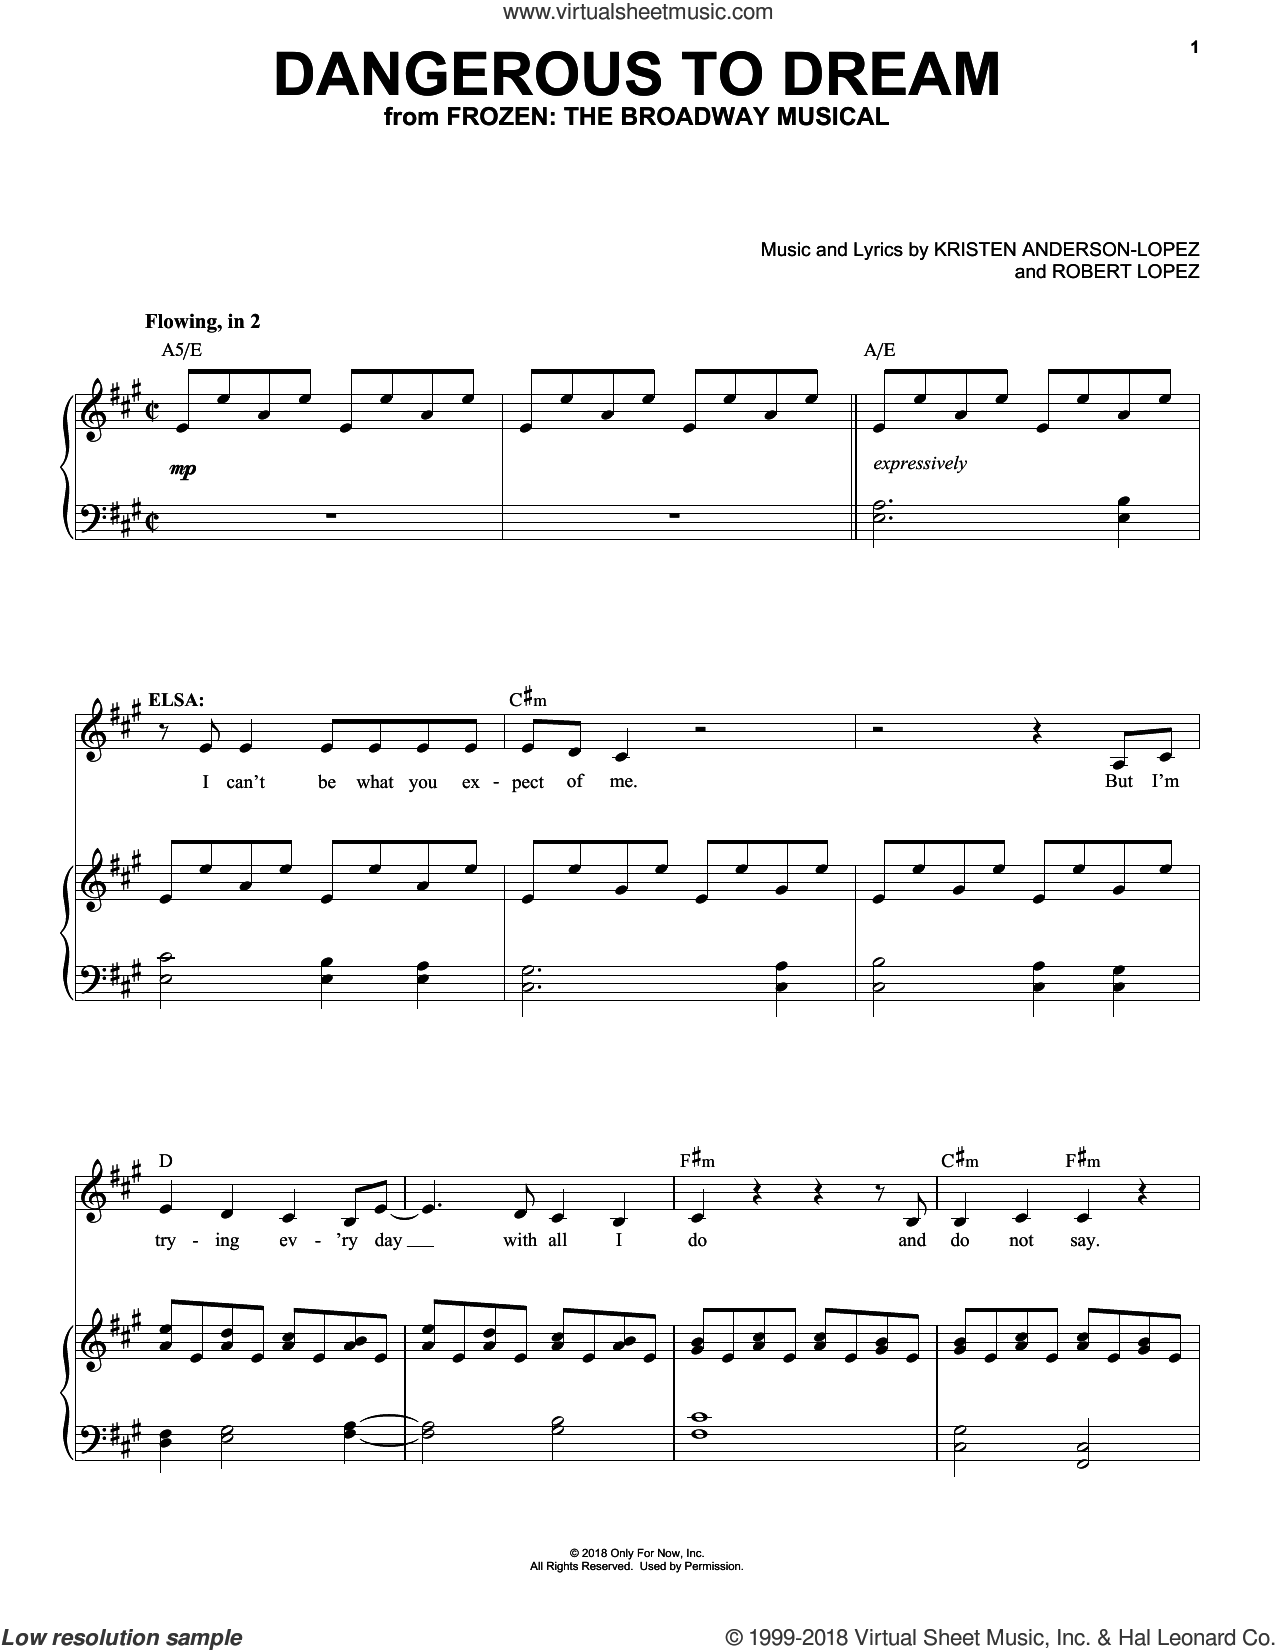 Dangerous To Dream (from Frozen: The Broadway Musical) sheet music for voice and piano by Robert Lopez, Kristen Anderson-Lopez and Kristen Anderson-Lopez & Robert Lopez, intermediate skill level